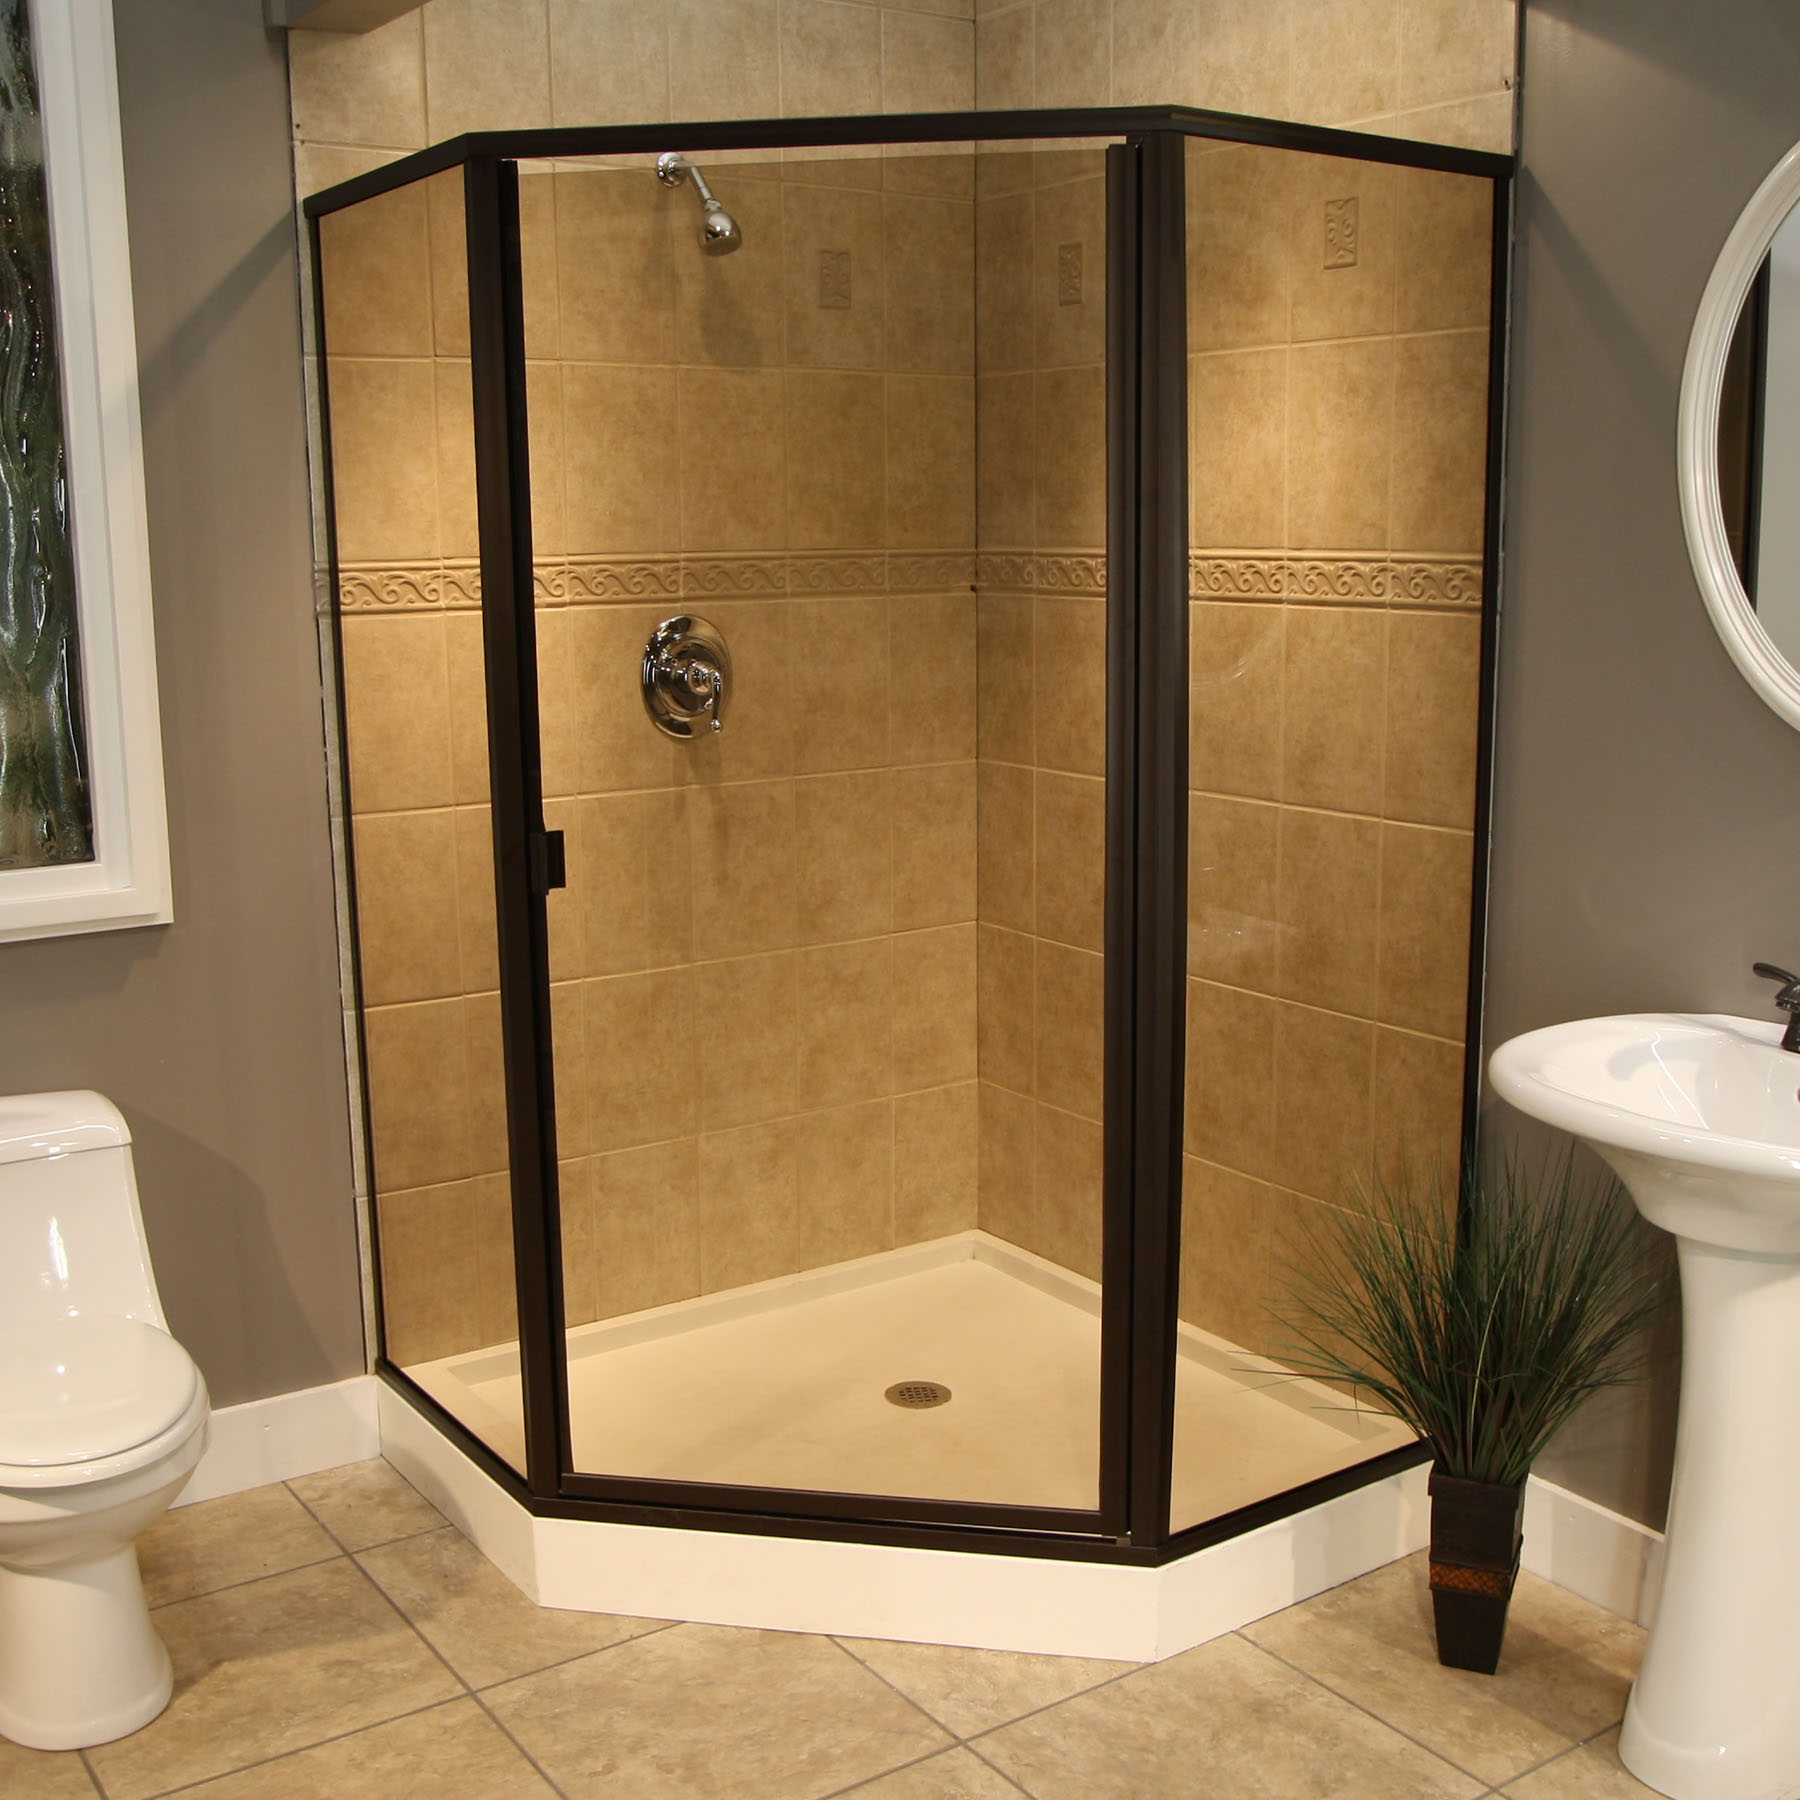 Denver Shower Glass - Save on Shower Glass Framed Shower doors ...